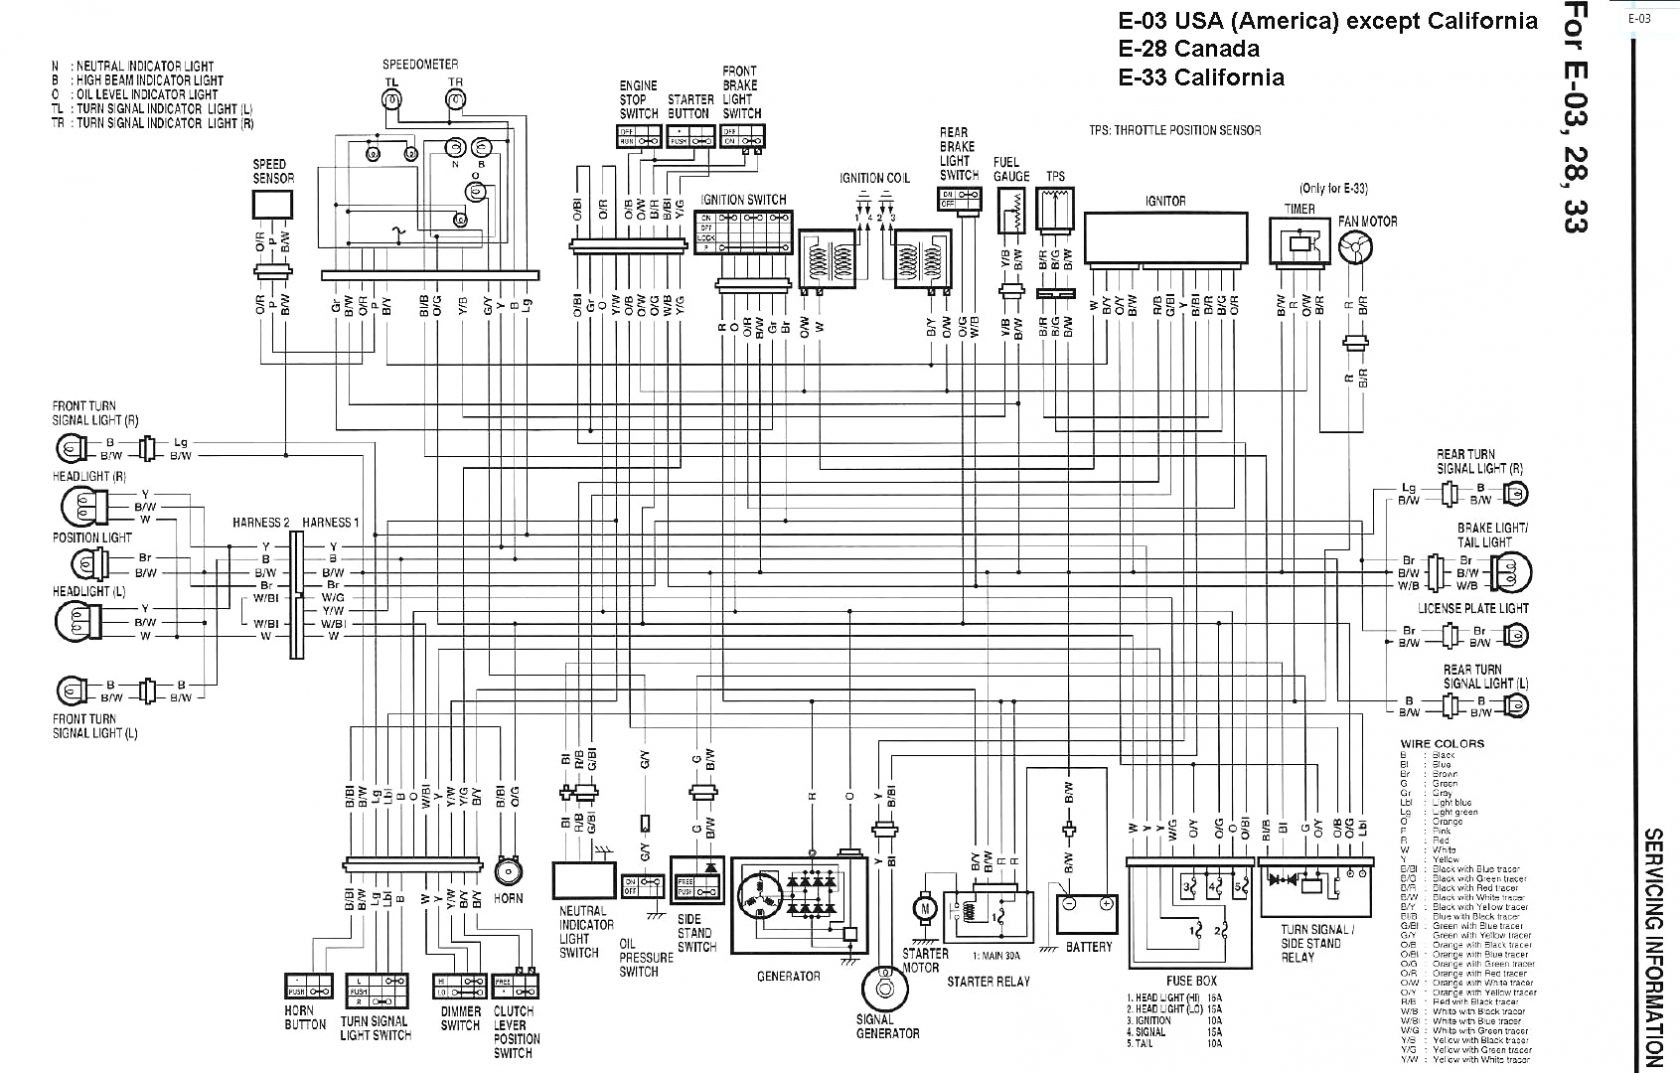 suzuki df140 wiring diagram | free wiring diagram suzuki margalla wiring diagram